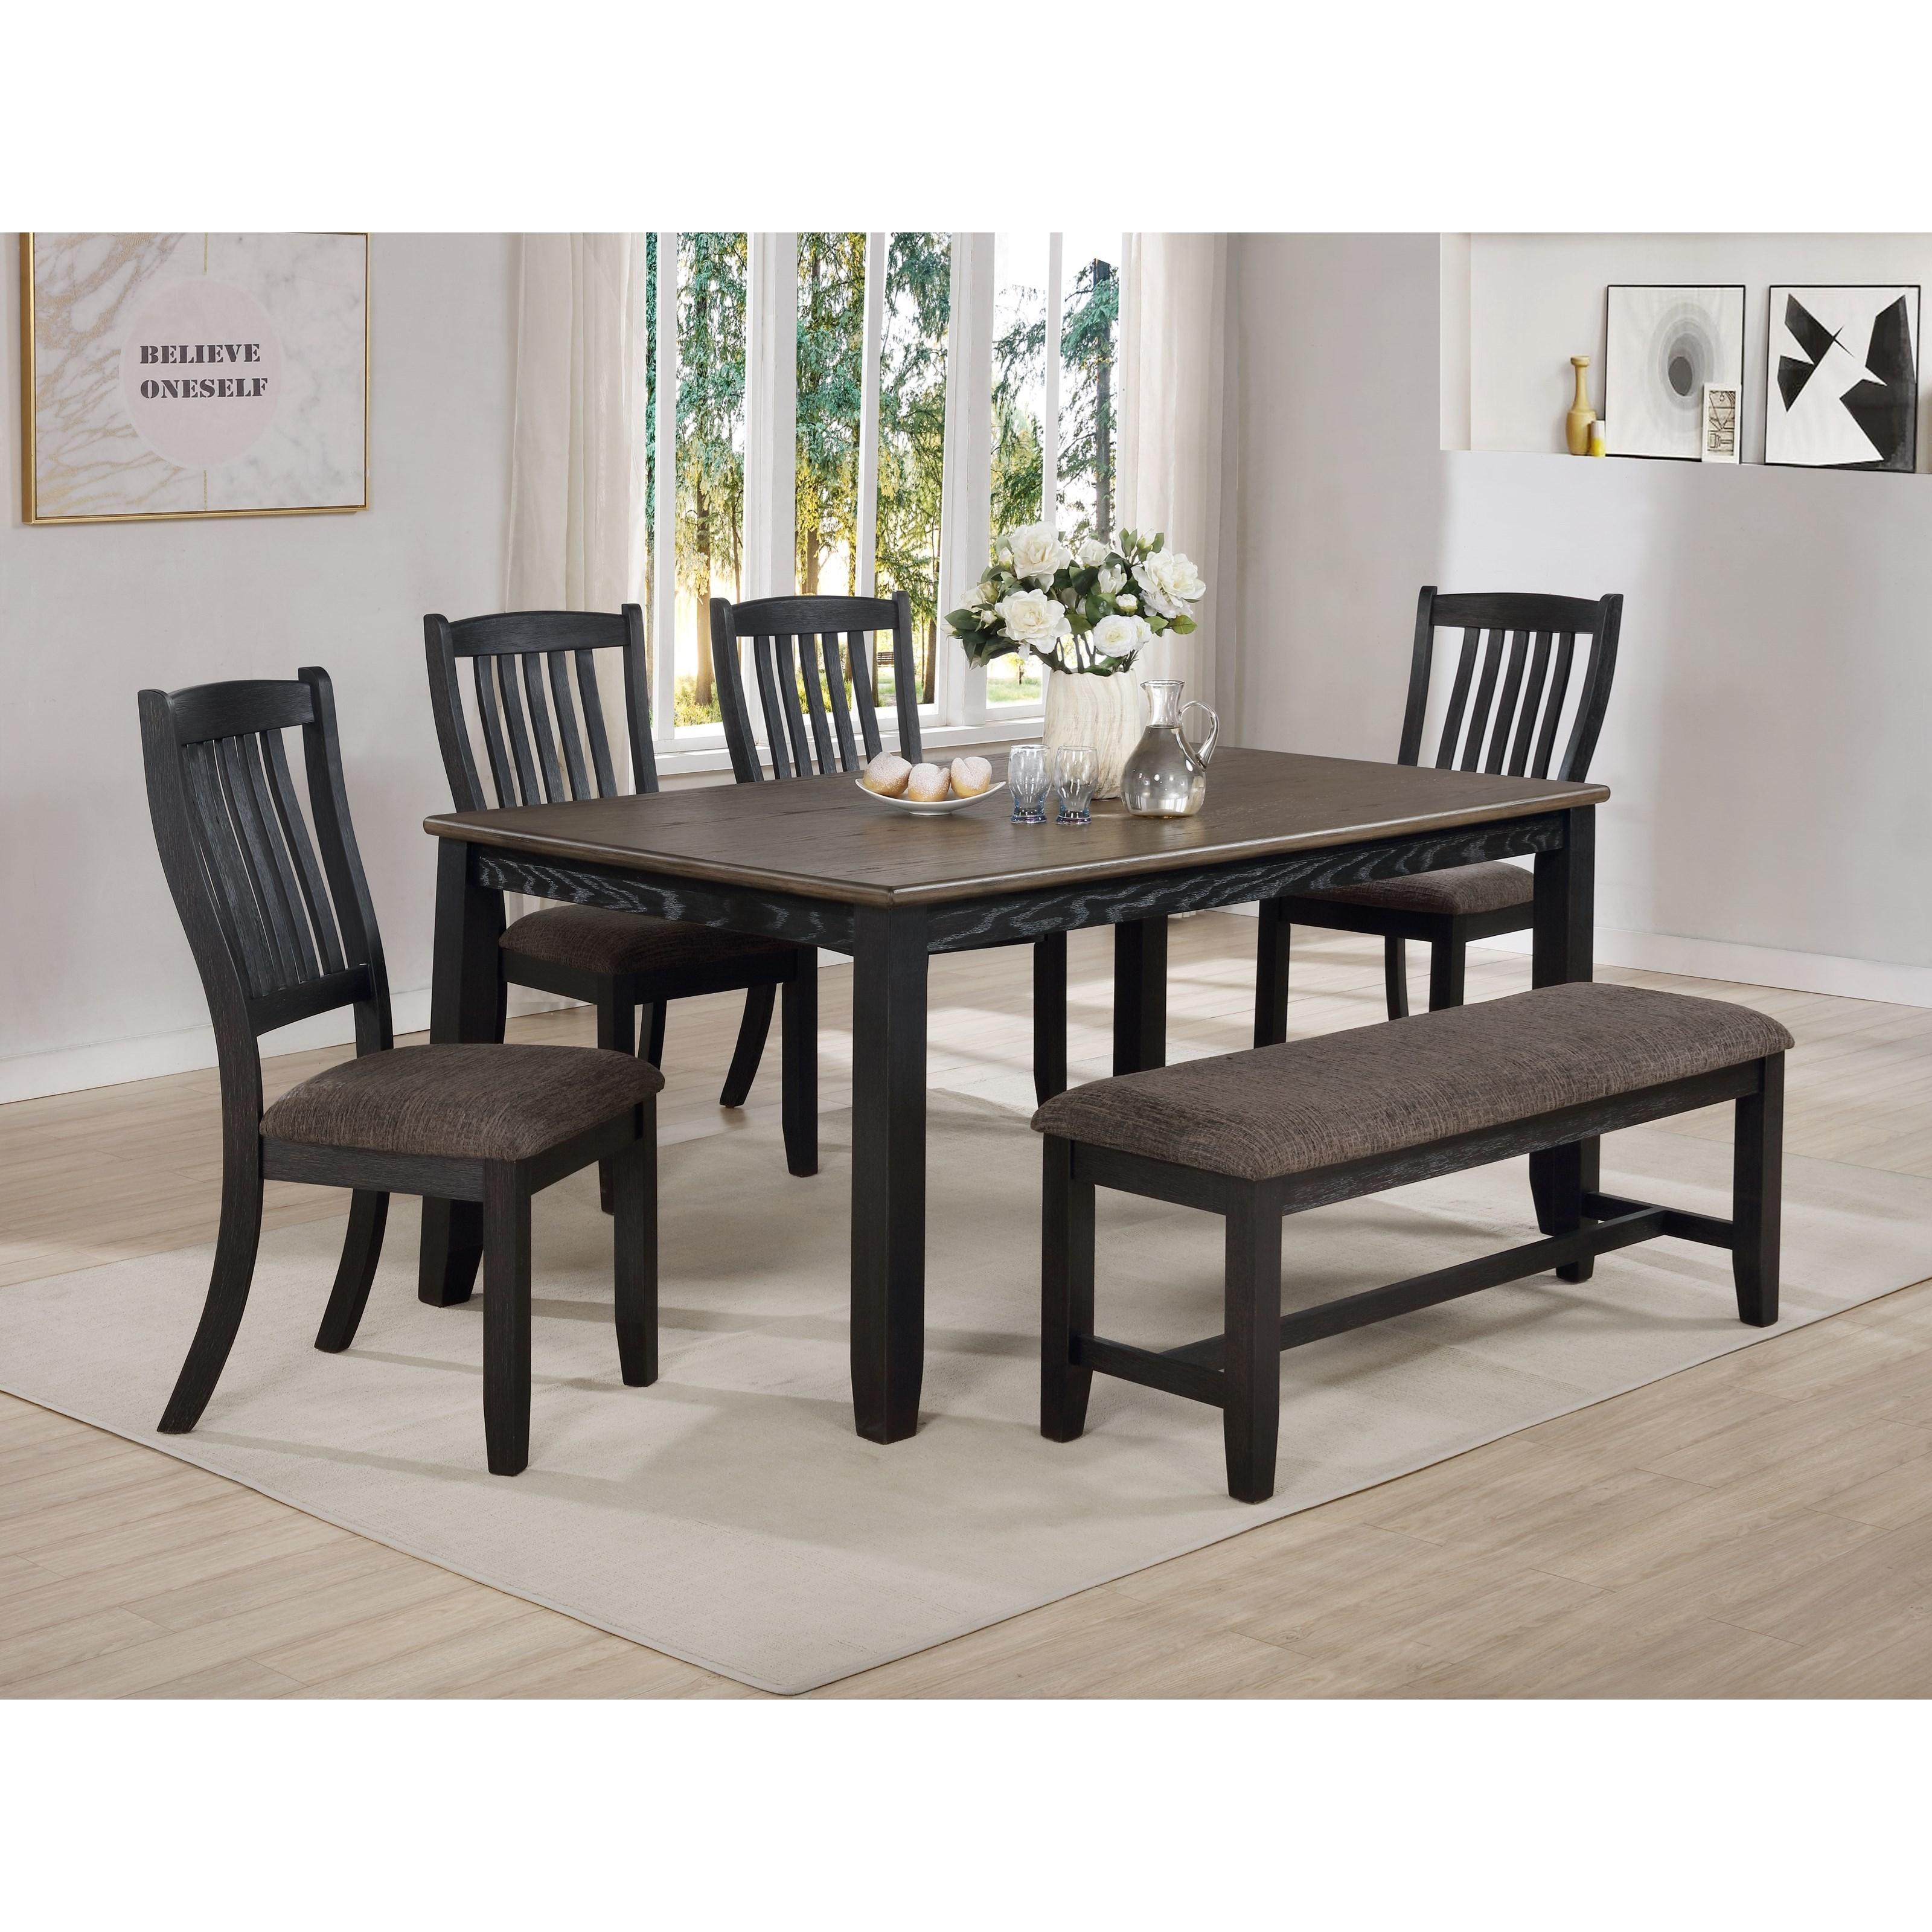 Jorie Table Set with Bench by Crown Mark at Northeast Factory Direct